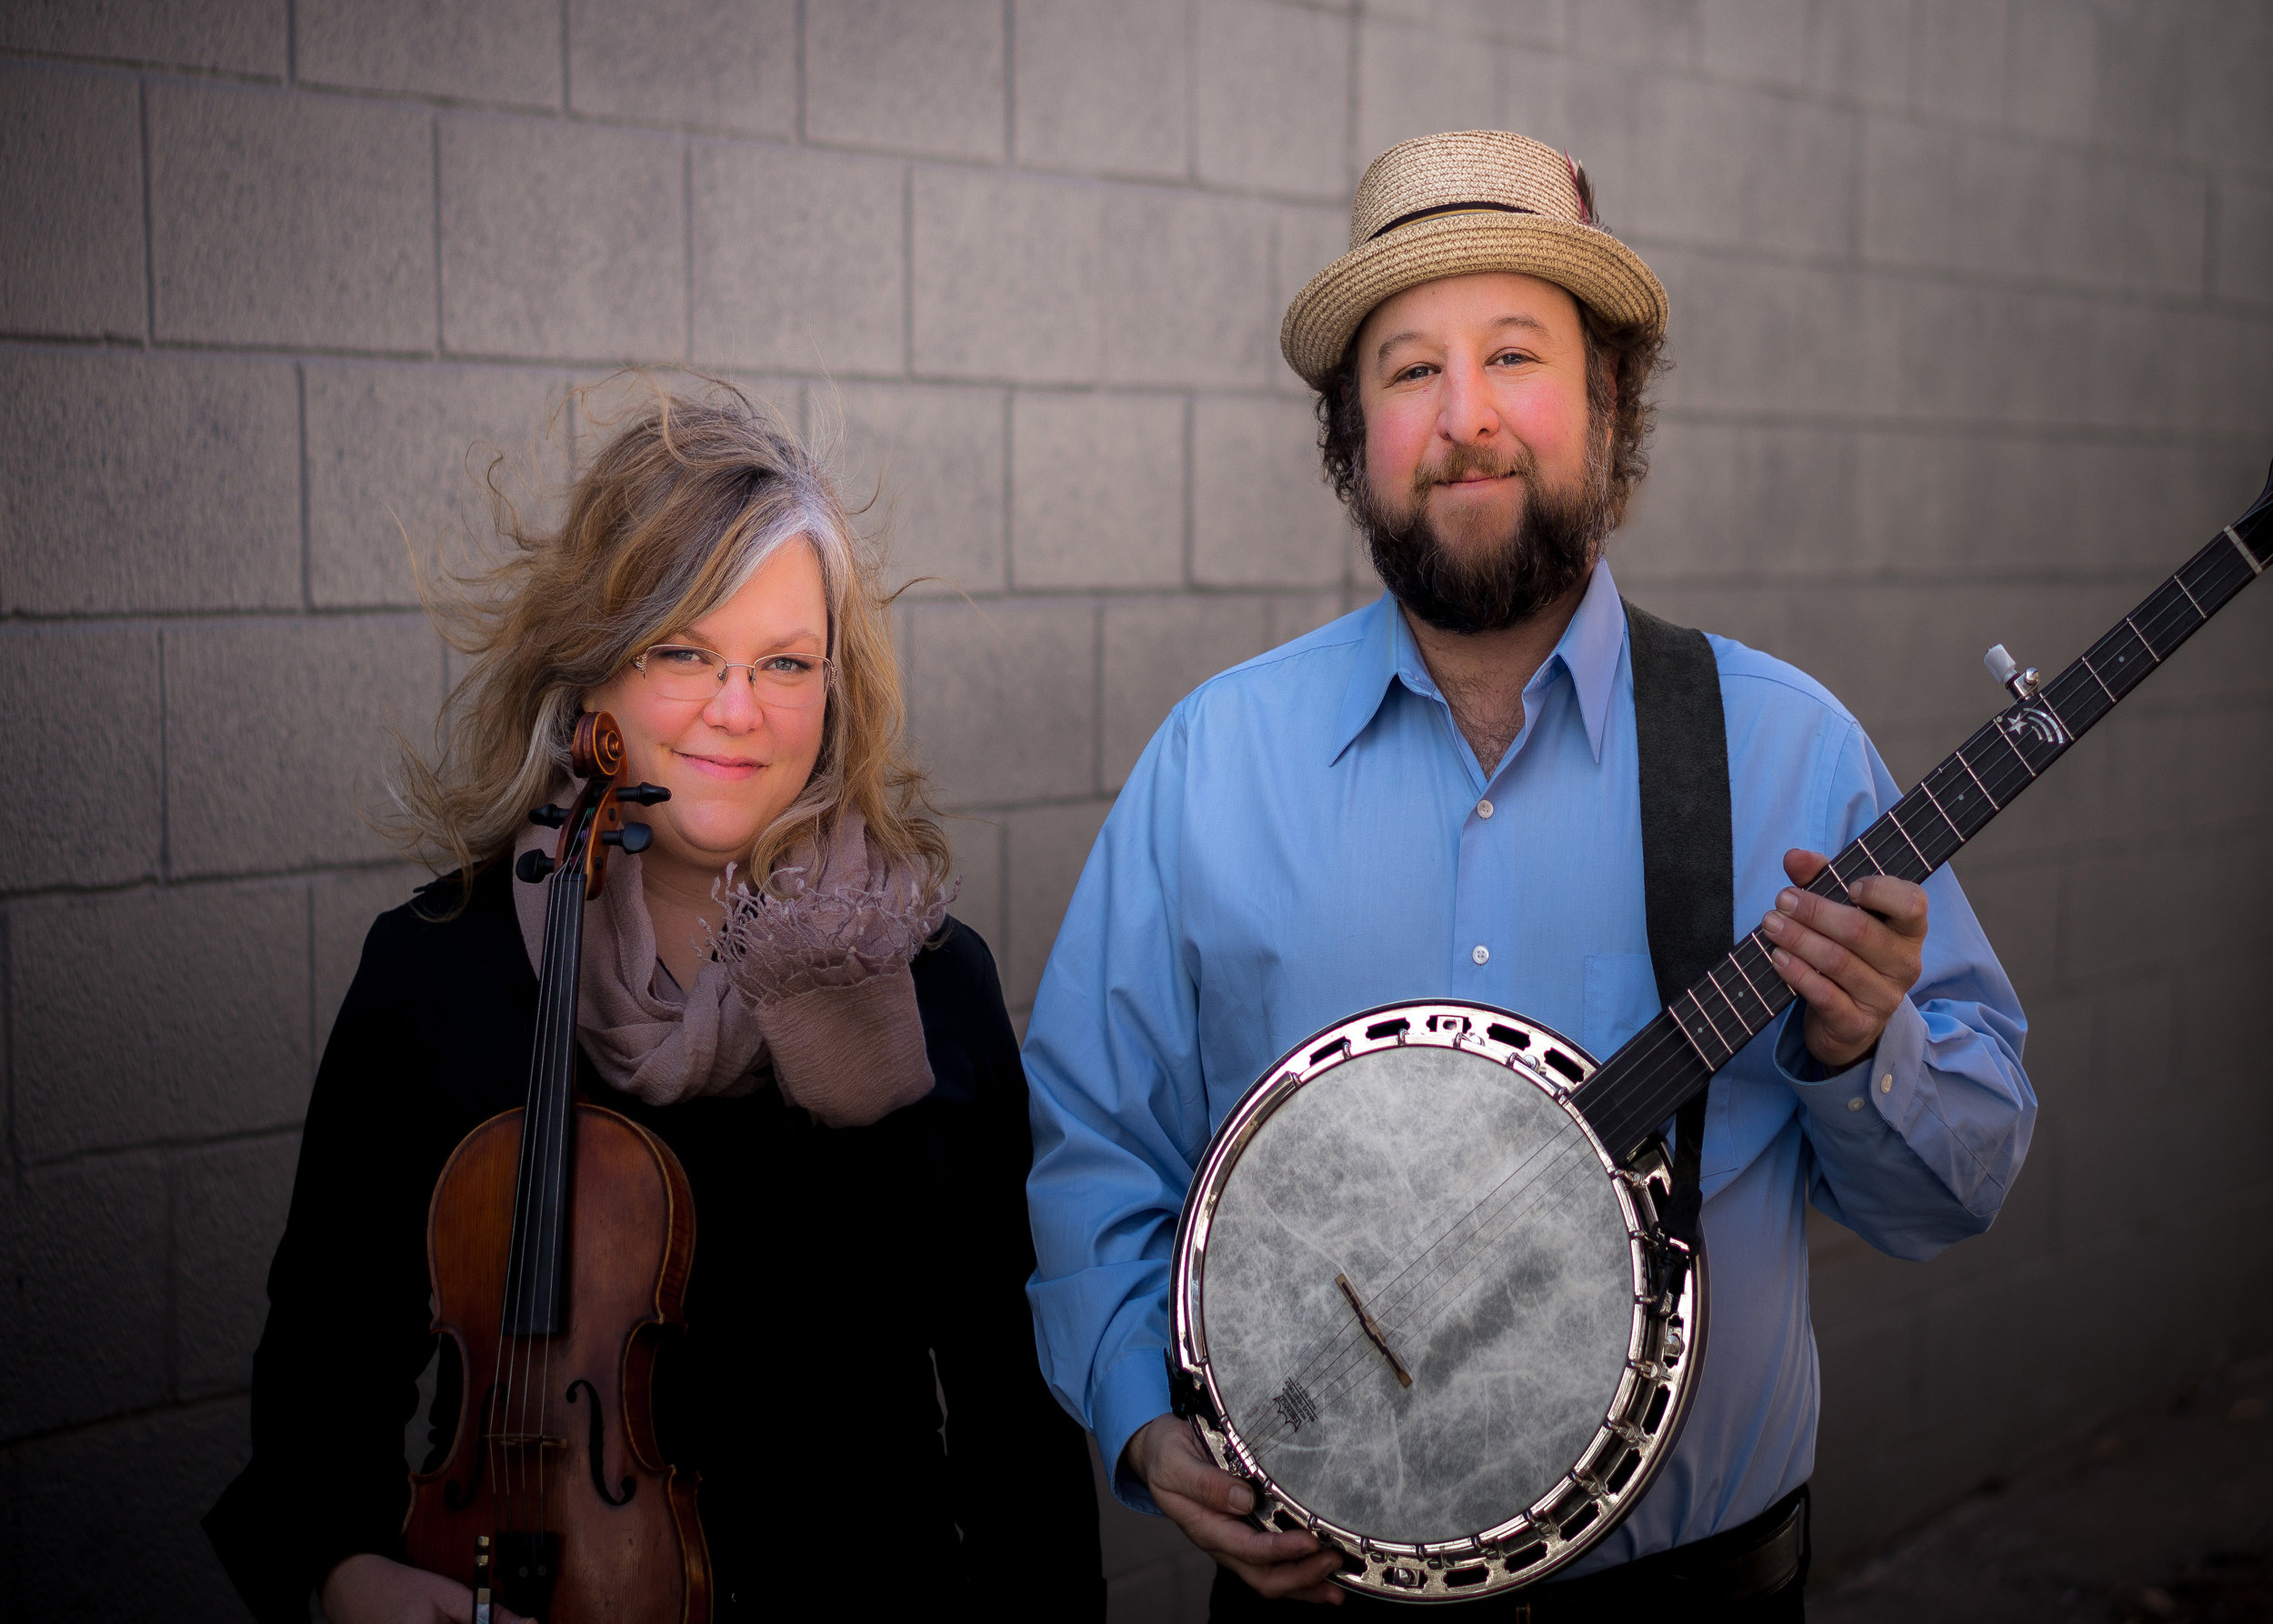 Betse & Clarke with instruments promotional photograph, color. Photo credit: Clarke Wyatt